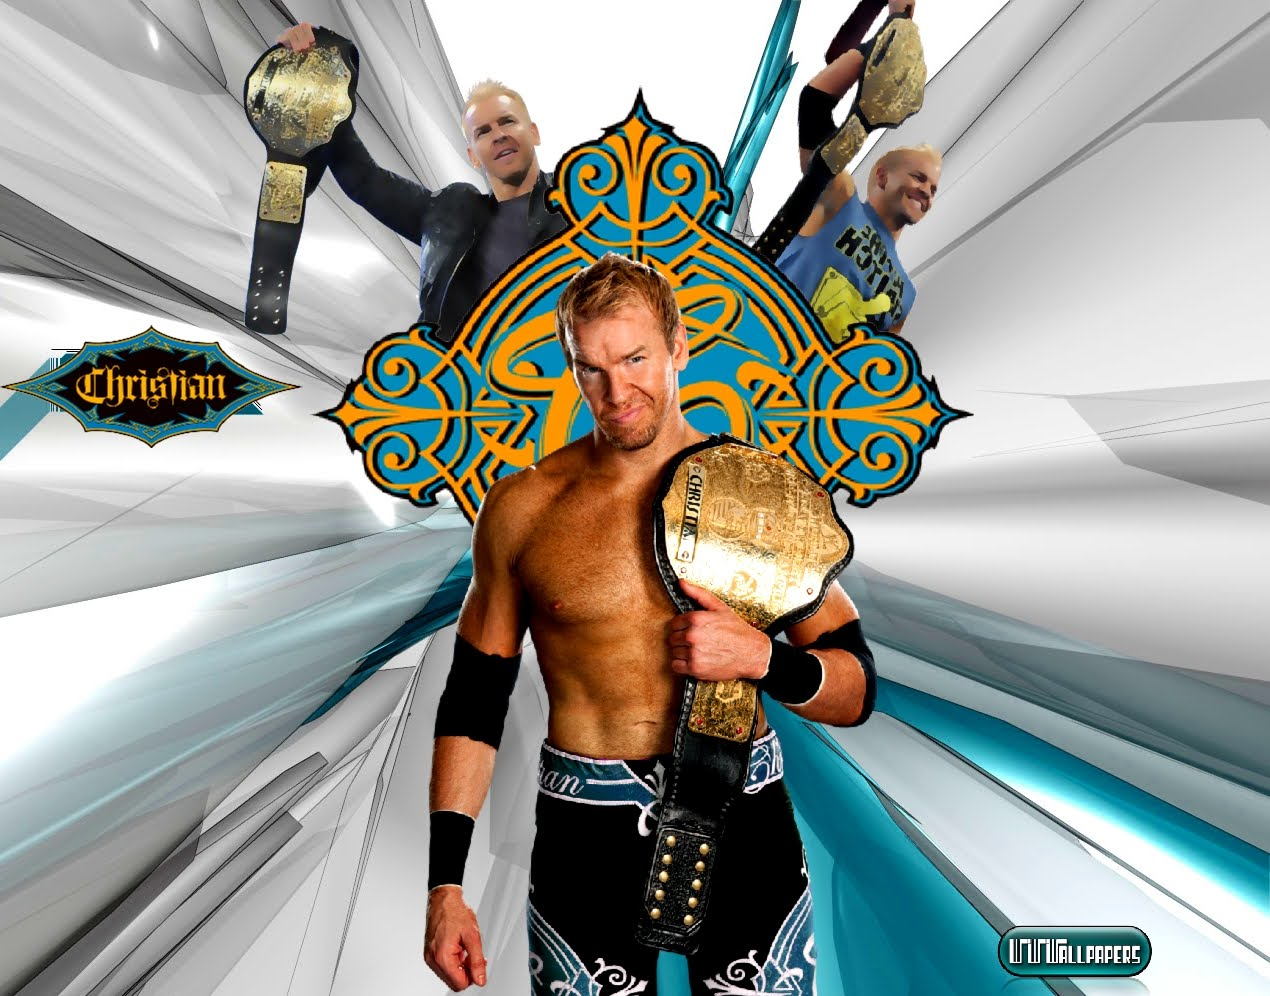 http://4.bp.blogspot.com/-V3nZJYN9Xjc/TjrkZE9Pk4I/AAAAAAAAArA/8-jQefouB0o/s1600/Christian+World+heavyweight+champion+wwe+wallpaper.jpg